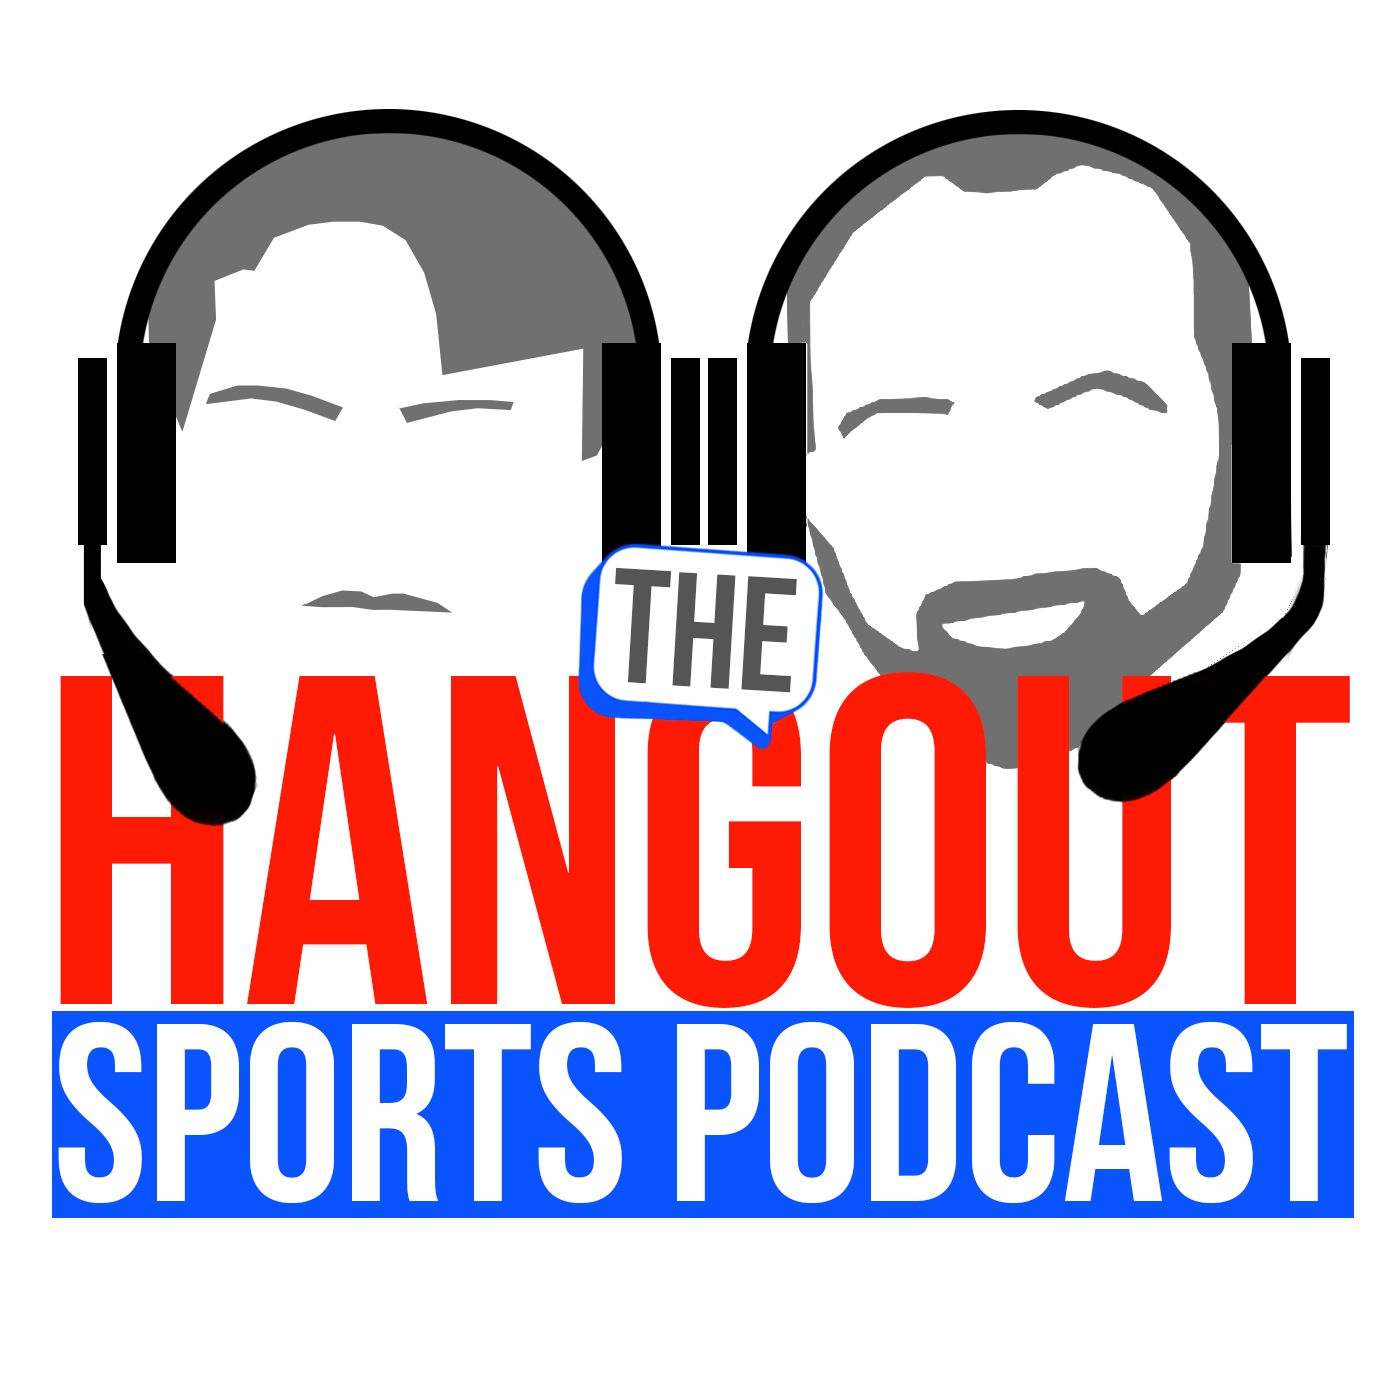 The Hangout Sports Podcast by info Podcasts, Sports